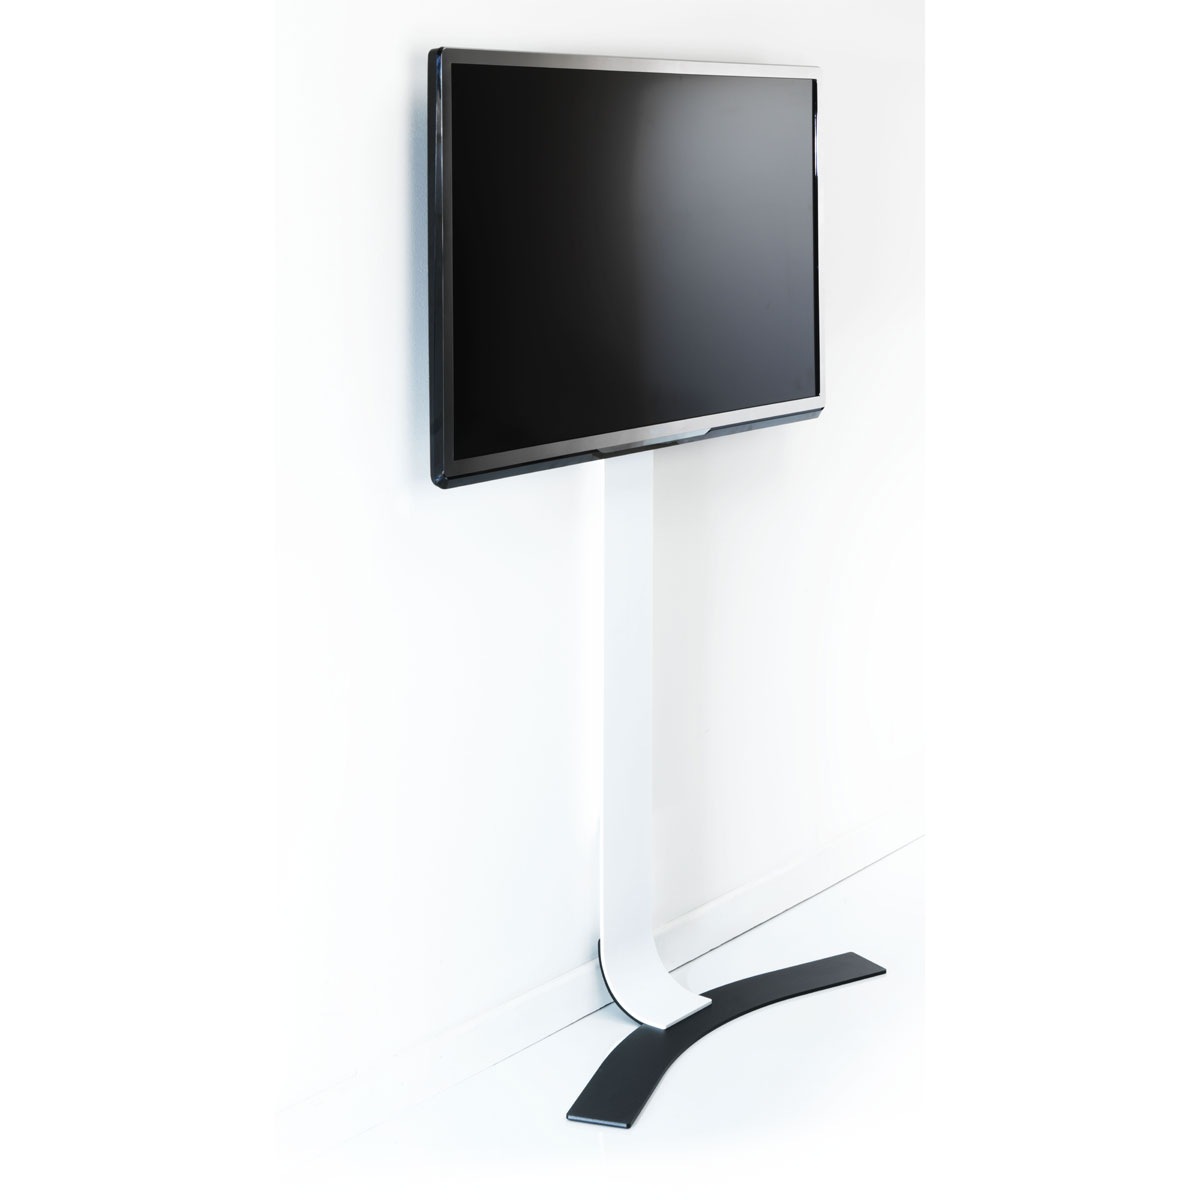 Erard standit 600 support mural tv erard group sur for Meuble tv mural orientable